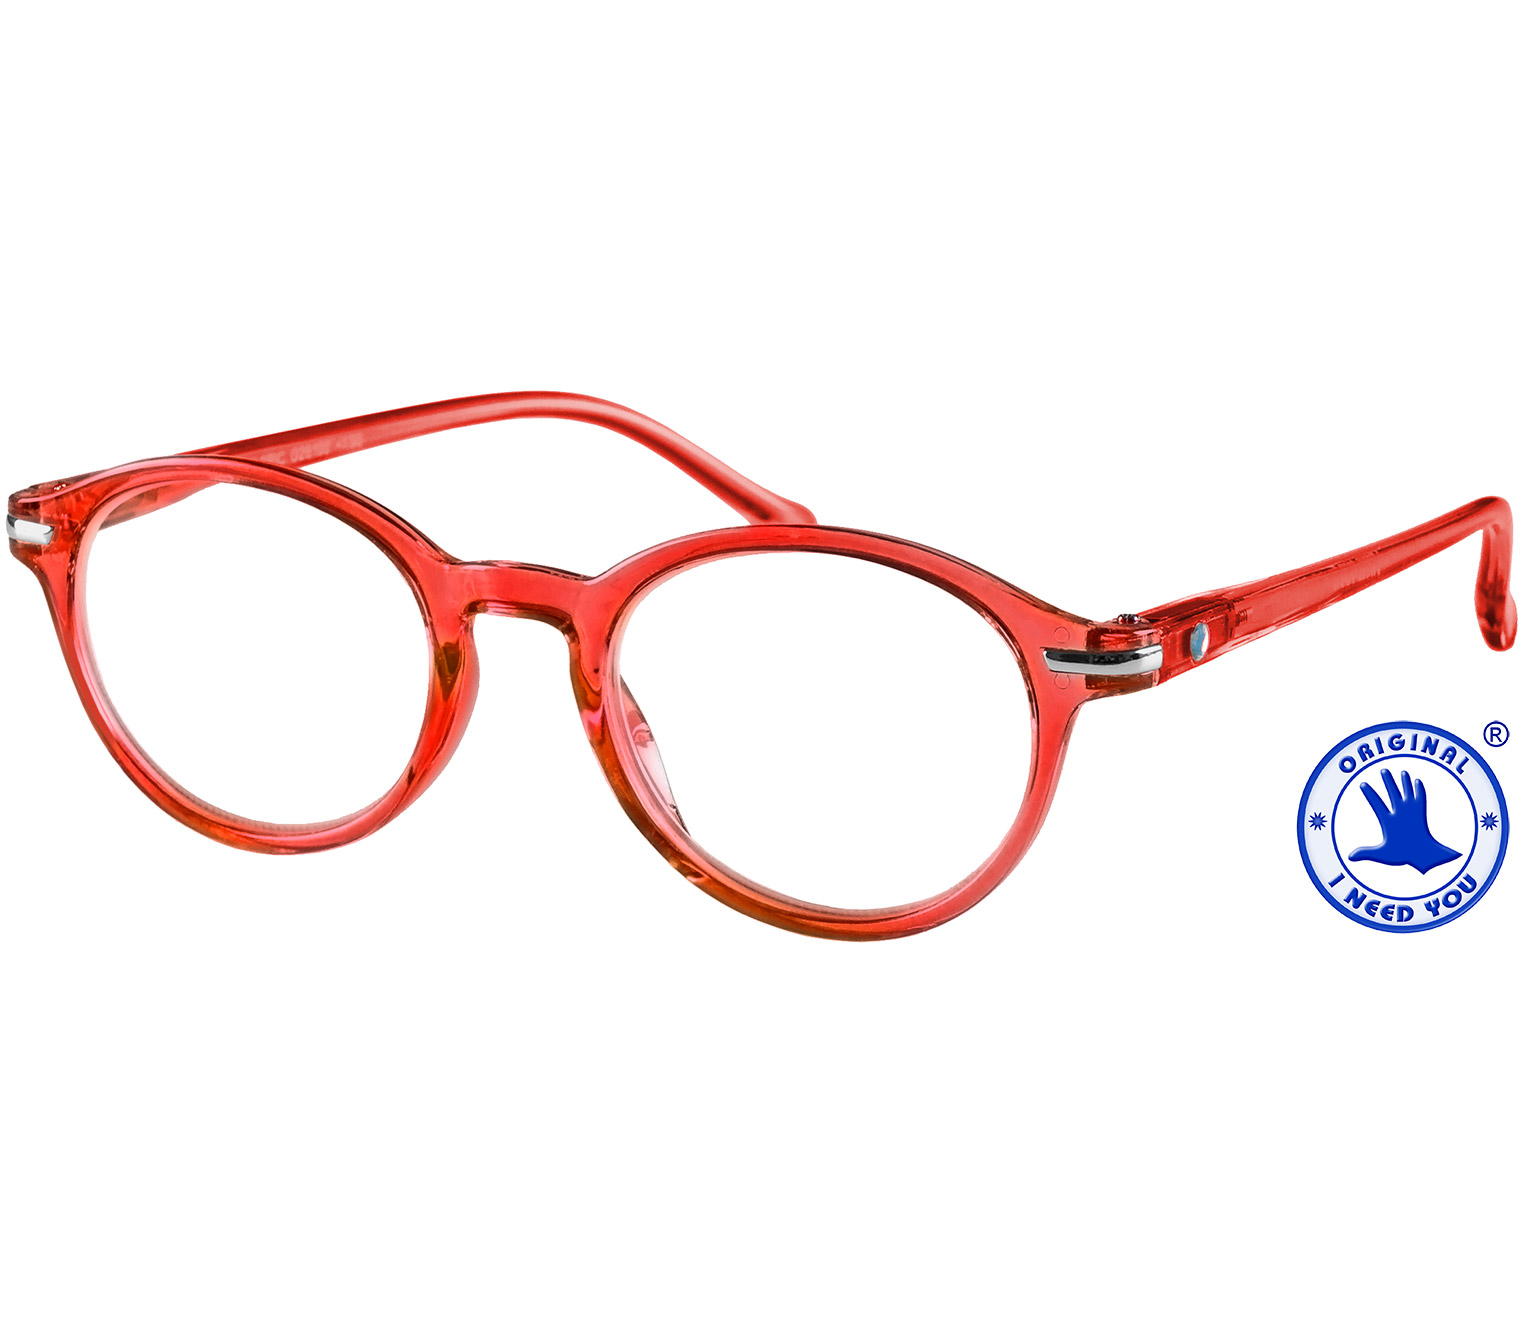 Main Image (Angle) - Tropic (Red) Retro Reading Glasses